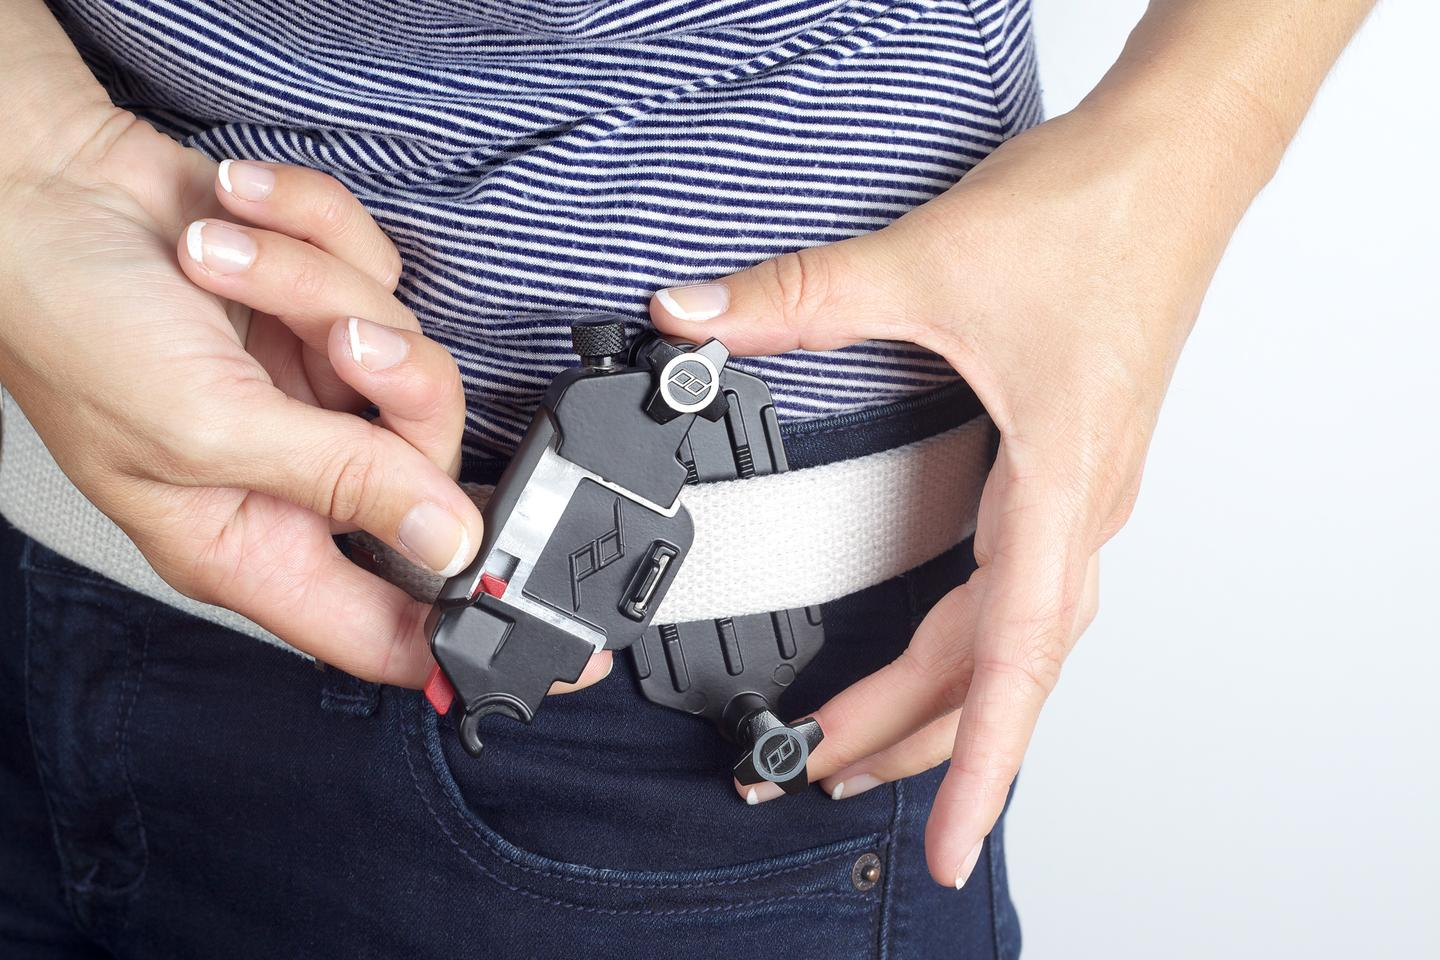 The Capture Camera Clip is clamped to a belt and then secured in place with two adjustable, low profile screws